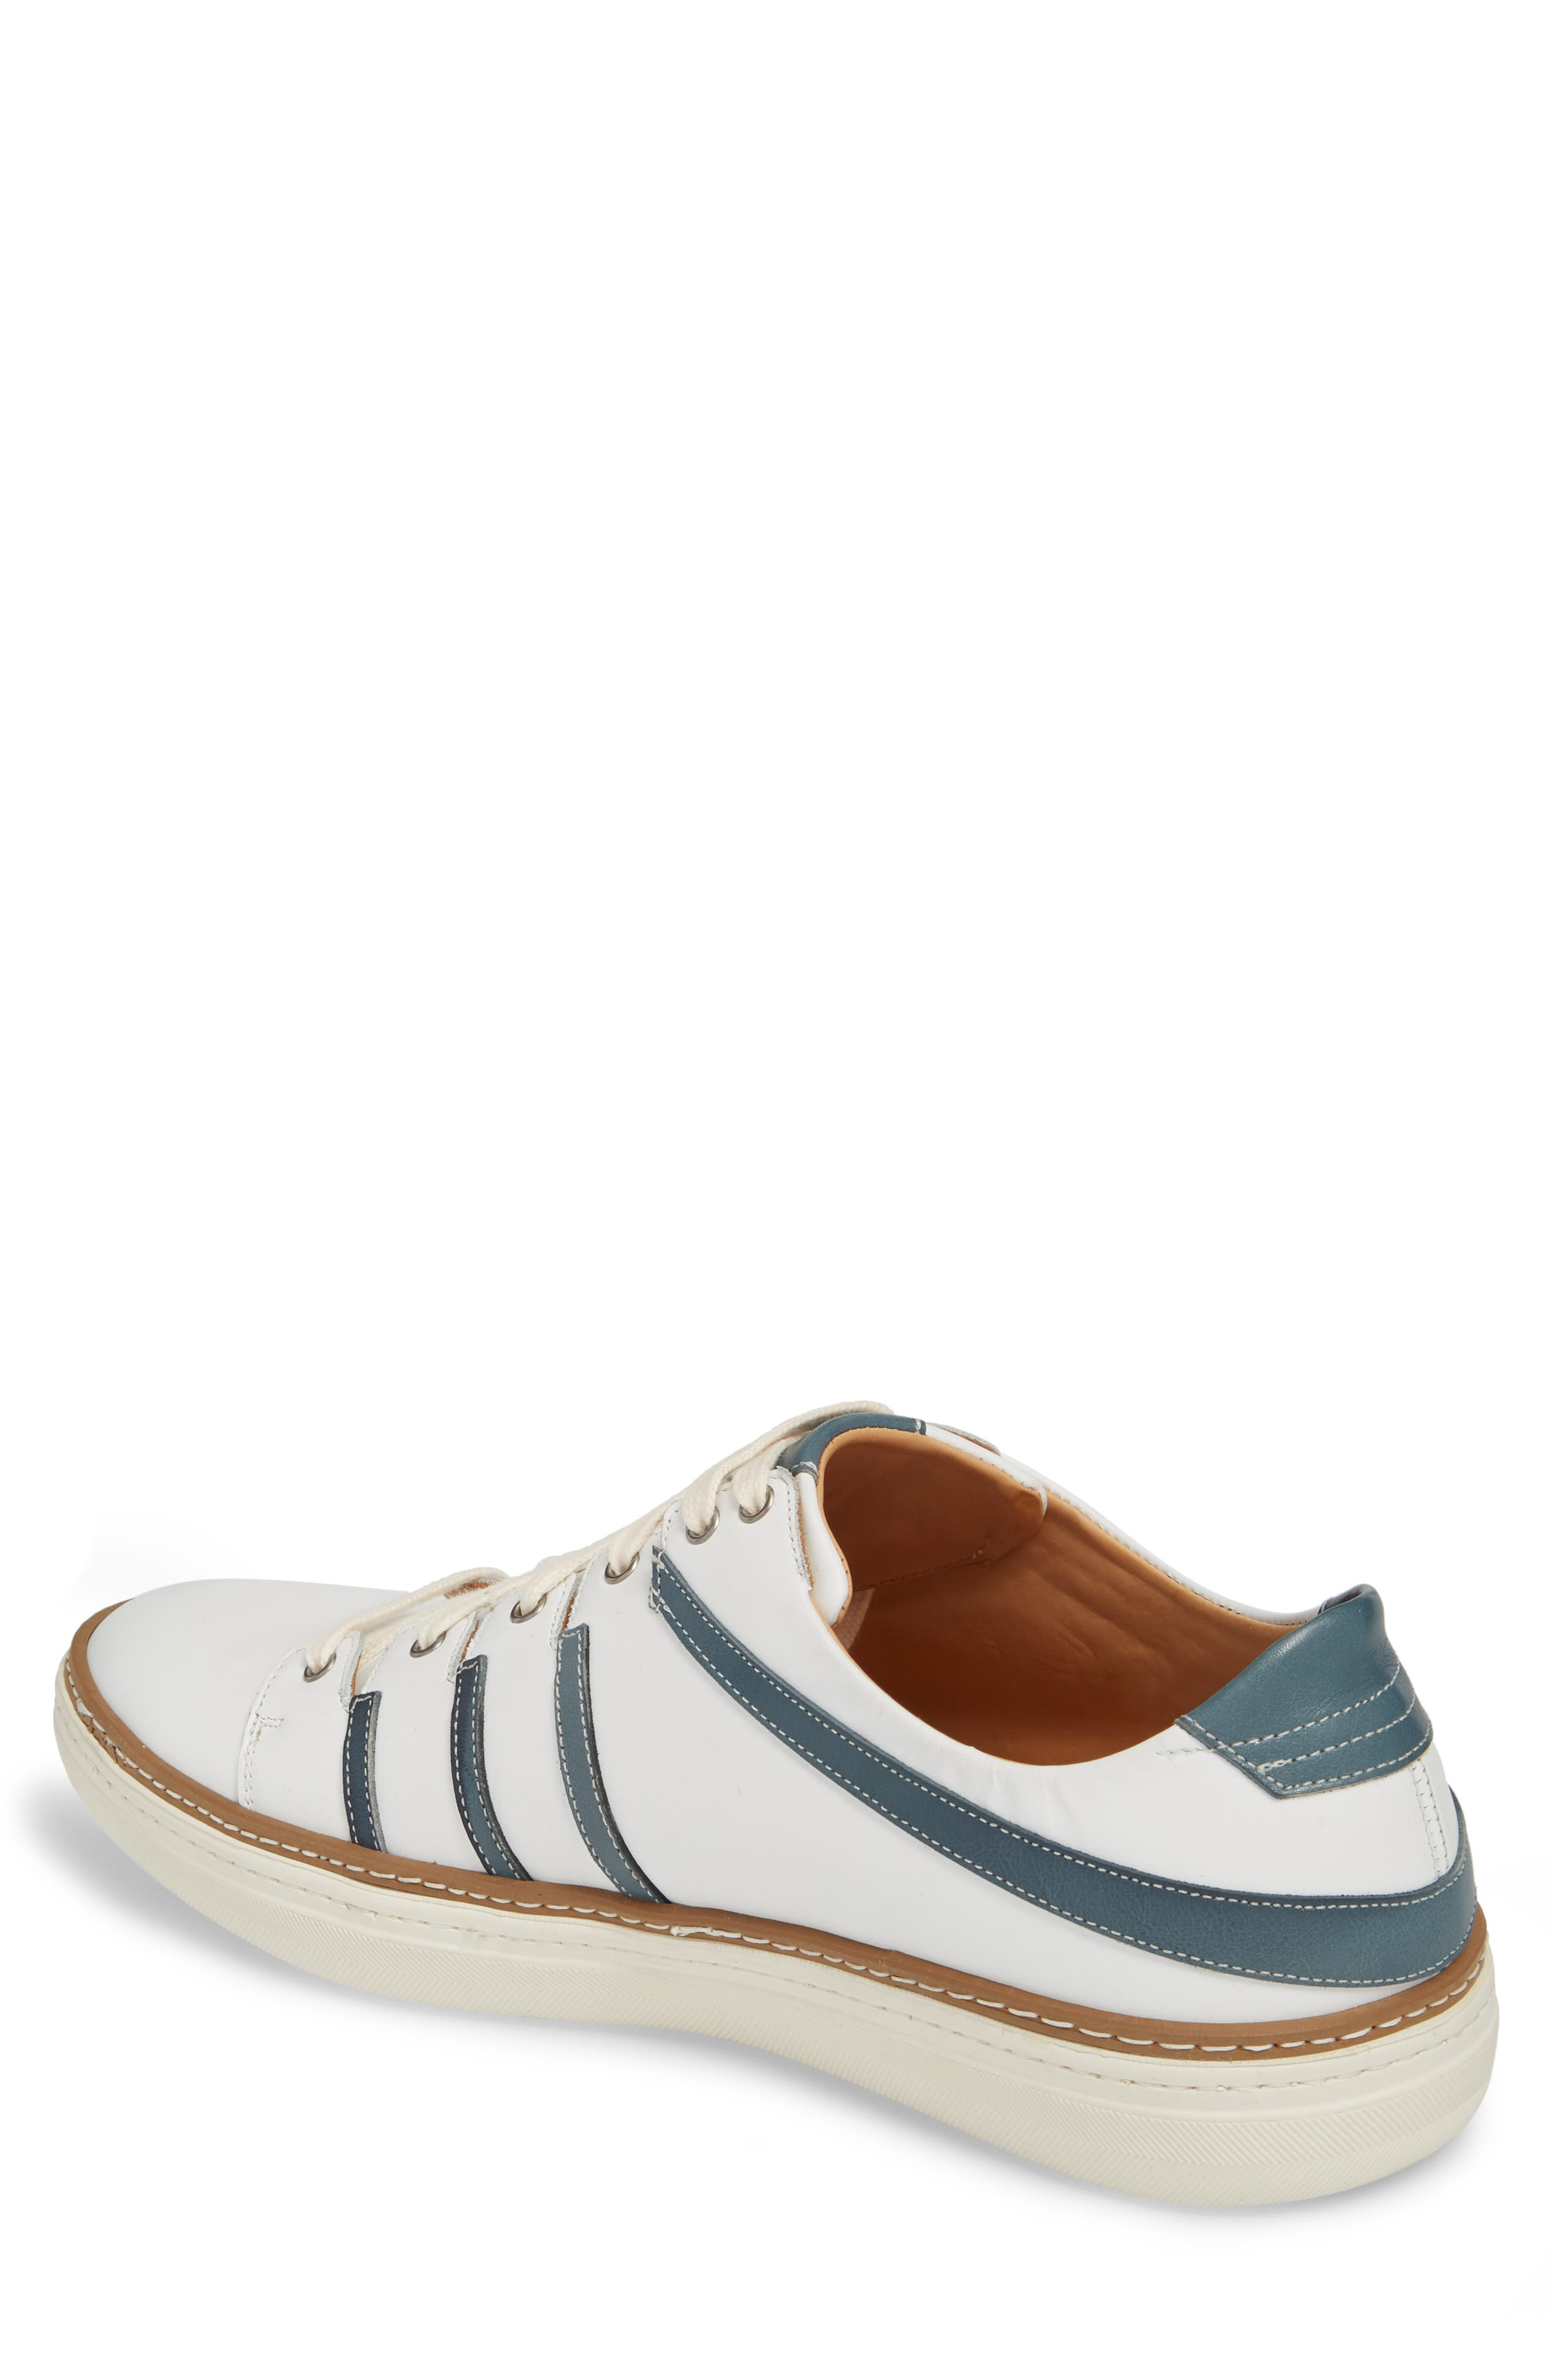 Tebas Striped Low Top Sneaker,                             Alternate thumbnail 2, color,                             White/ Jeans Leather